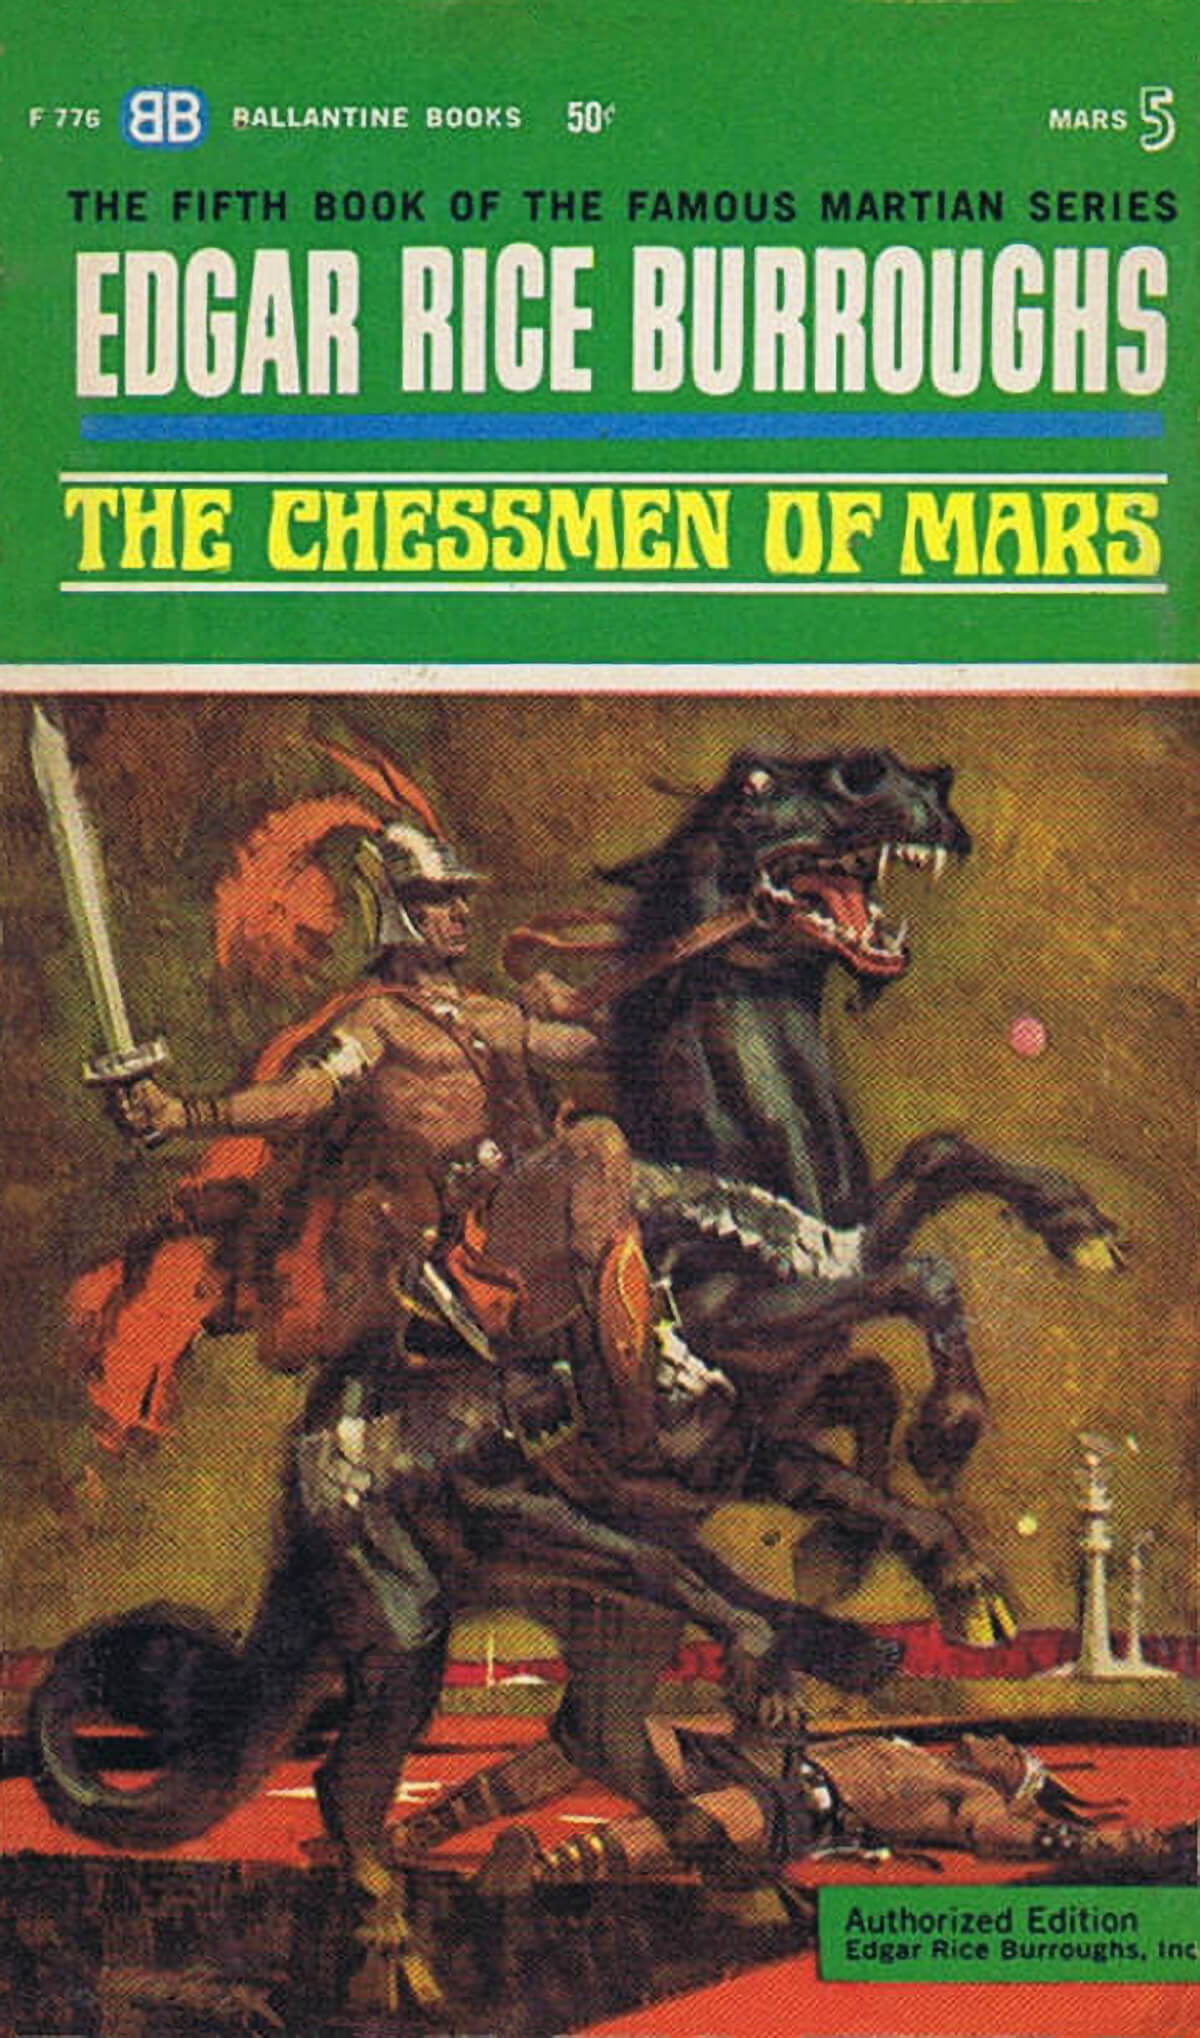 Robert K Abbett Jcom 5 The Chessmen Of Mars